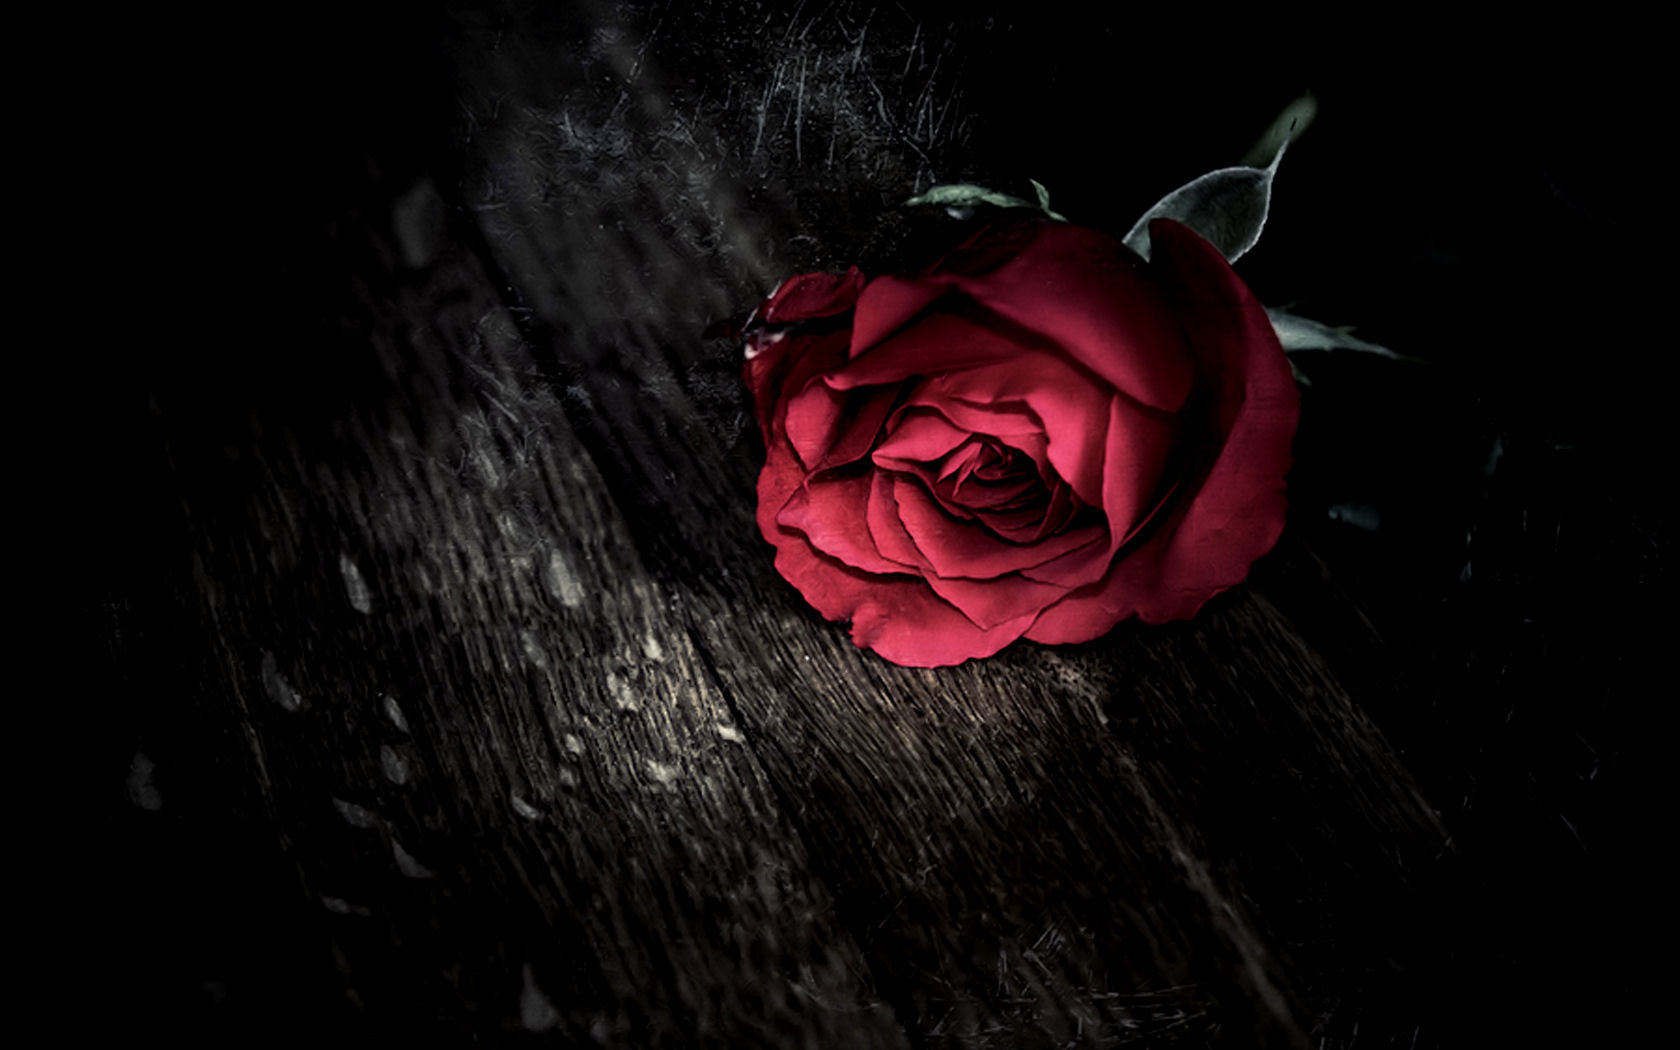 Hd wallpaper rose - Red Flower Roses Free Hd Wallpaper For You